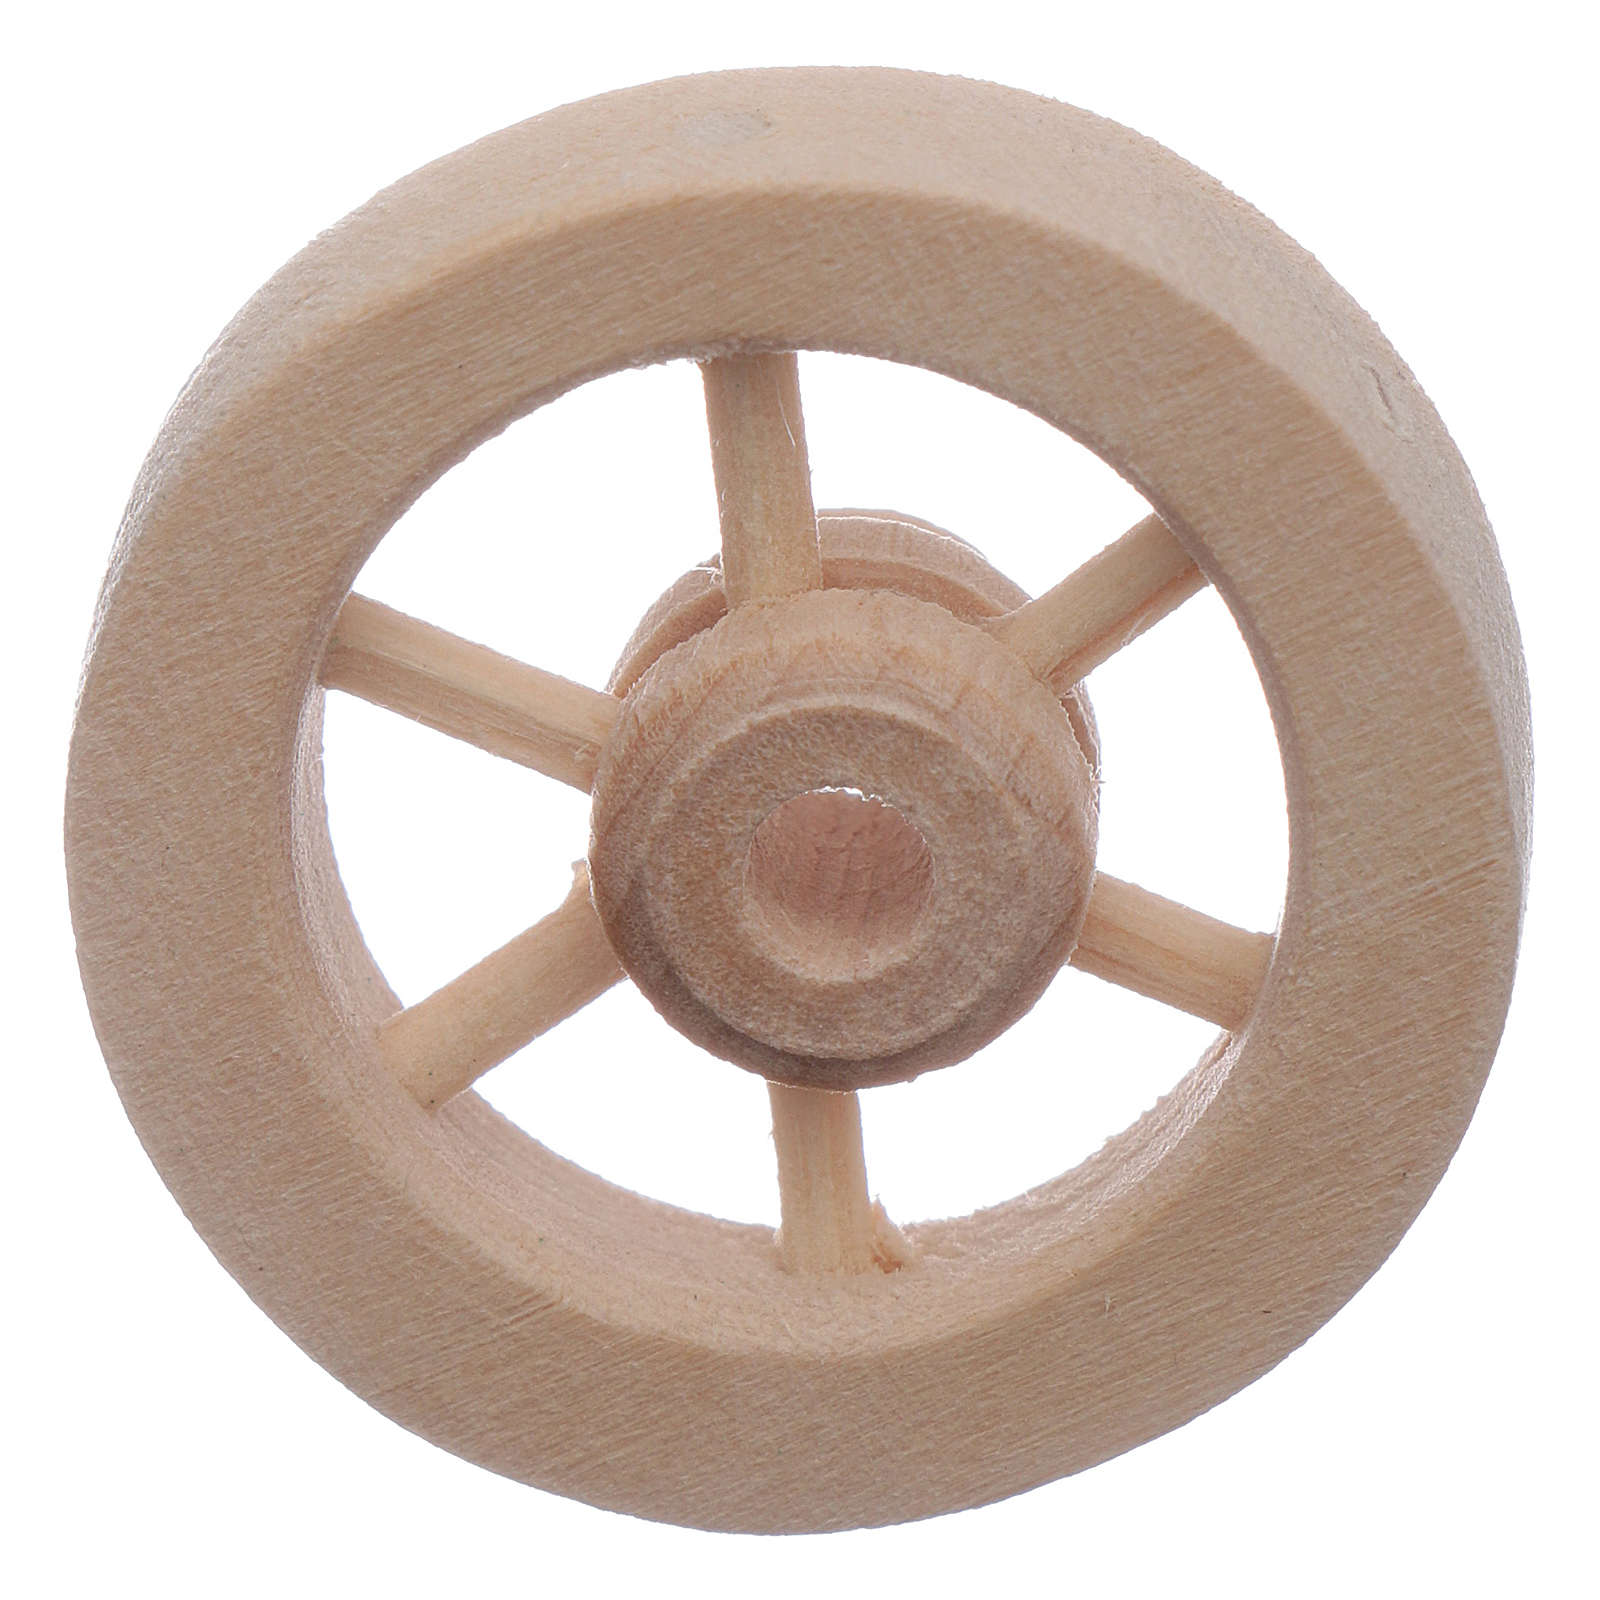 Nativity scene wooden wheel diameter 3 cm 4